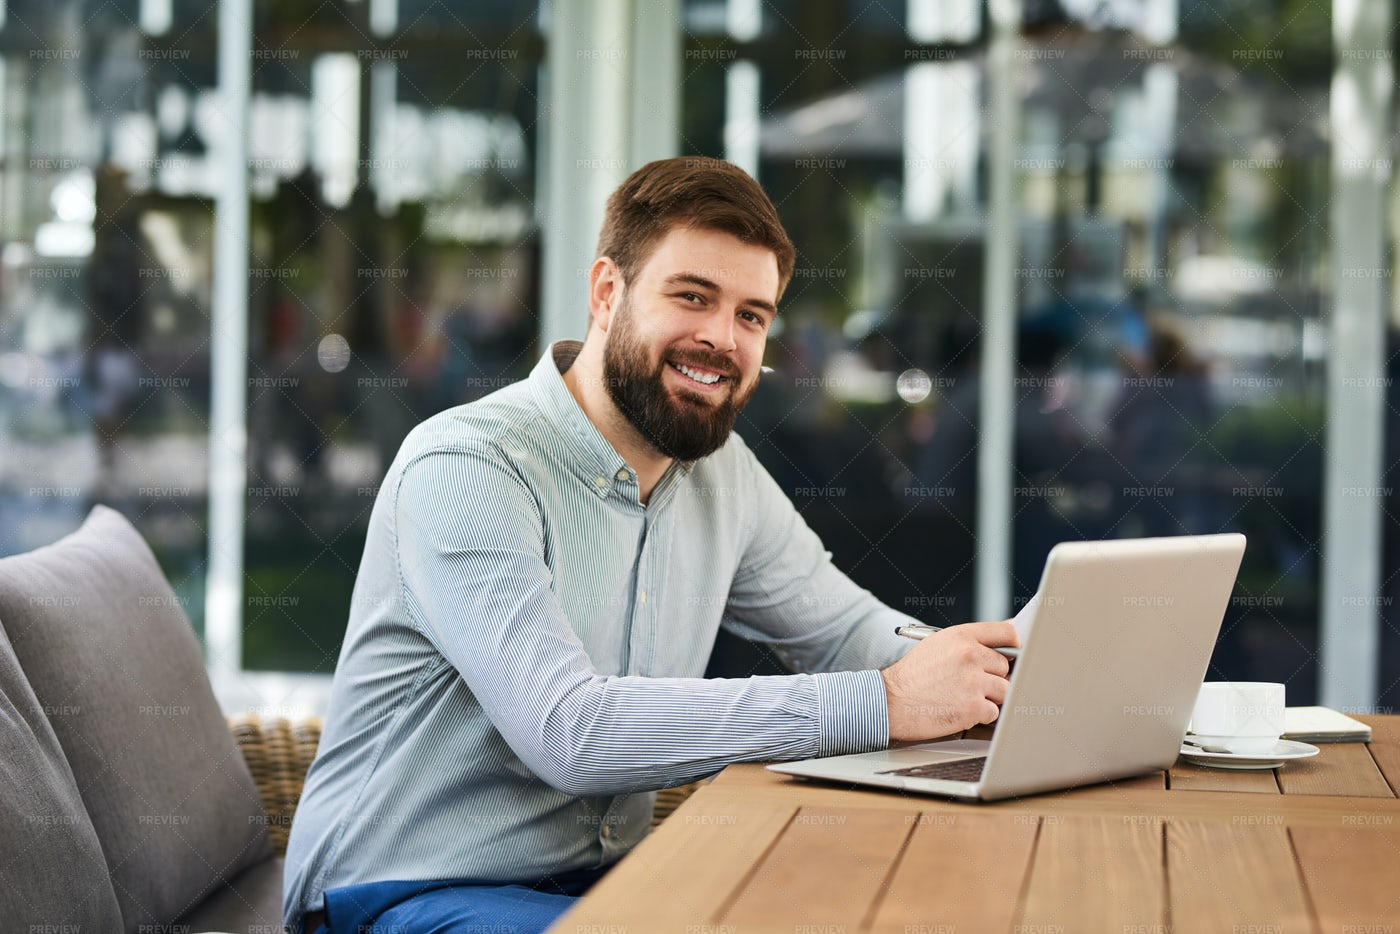 Smiling Bearded Man Working In...: Stock Photos